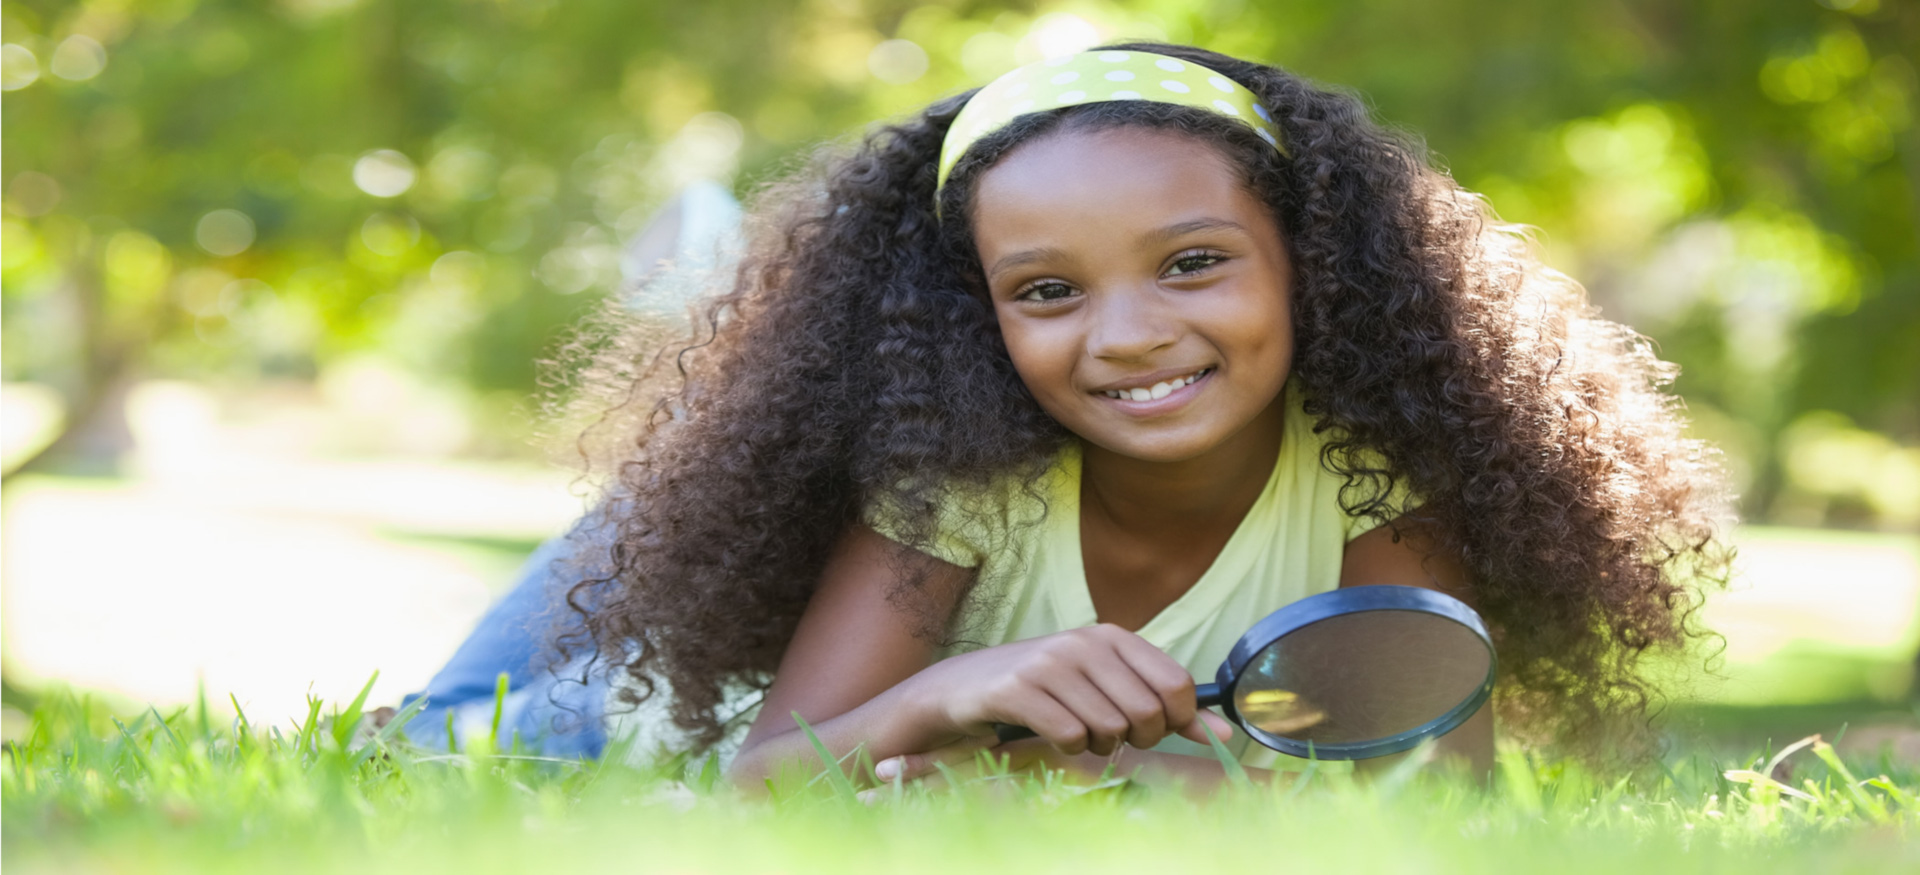 Image of a young girl on the grass with a magnifying glass